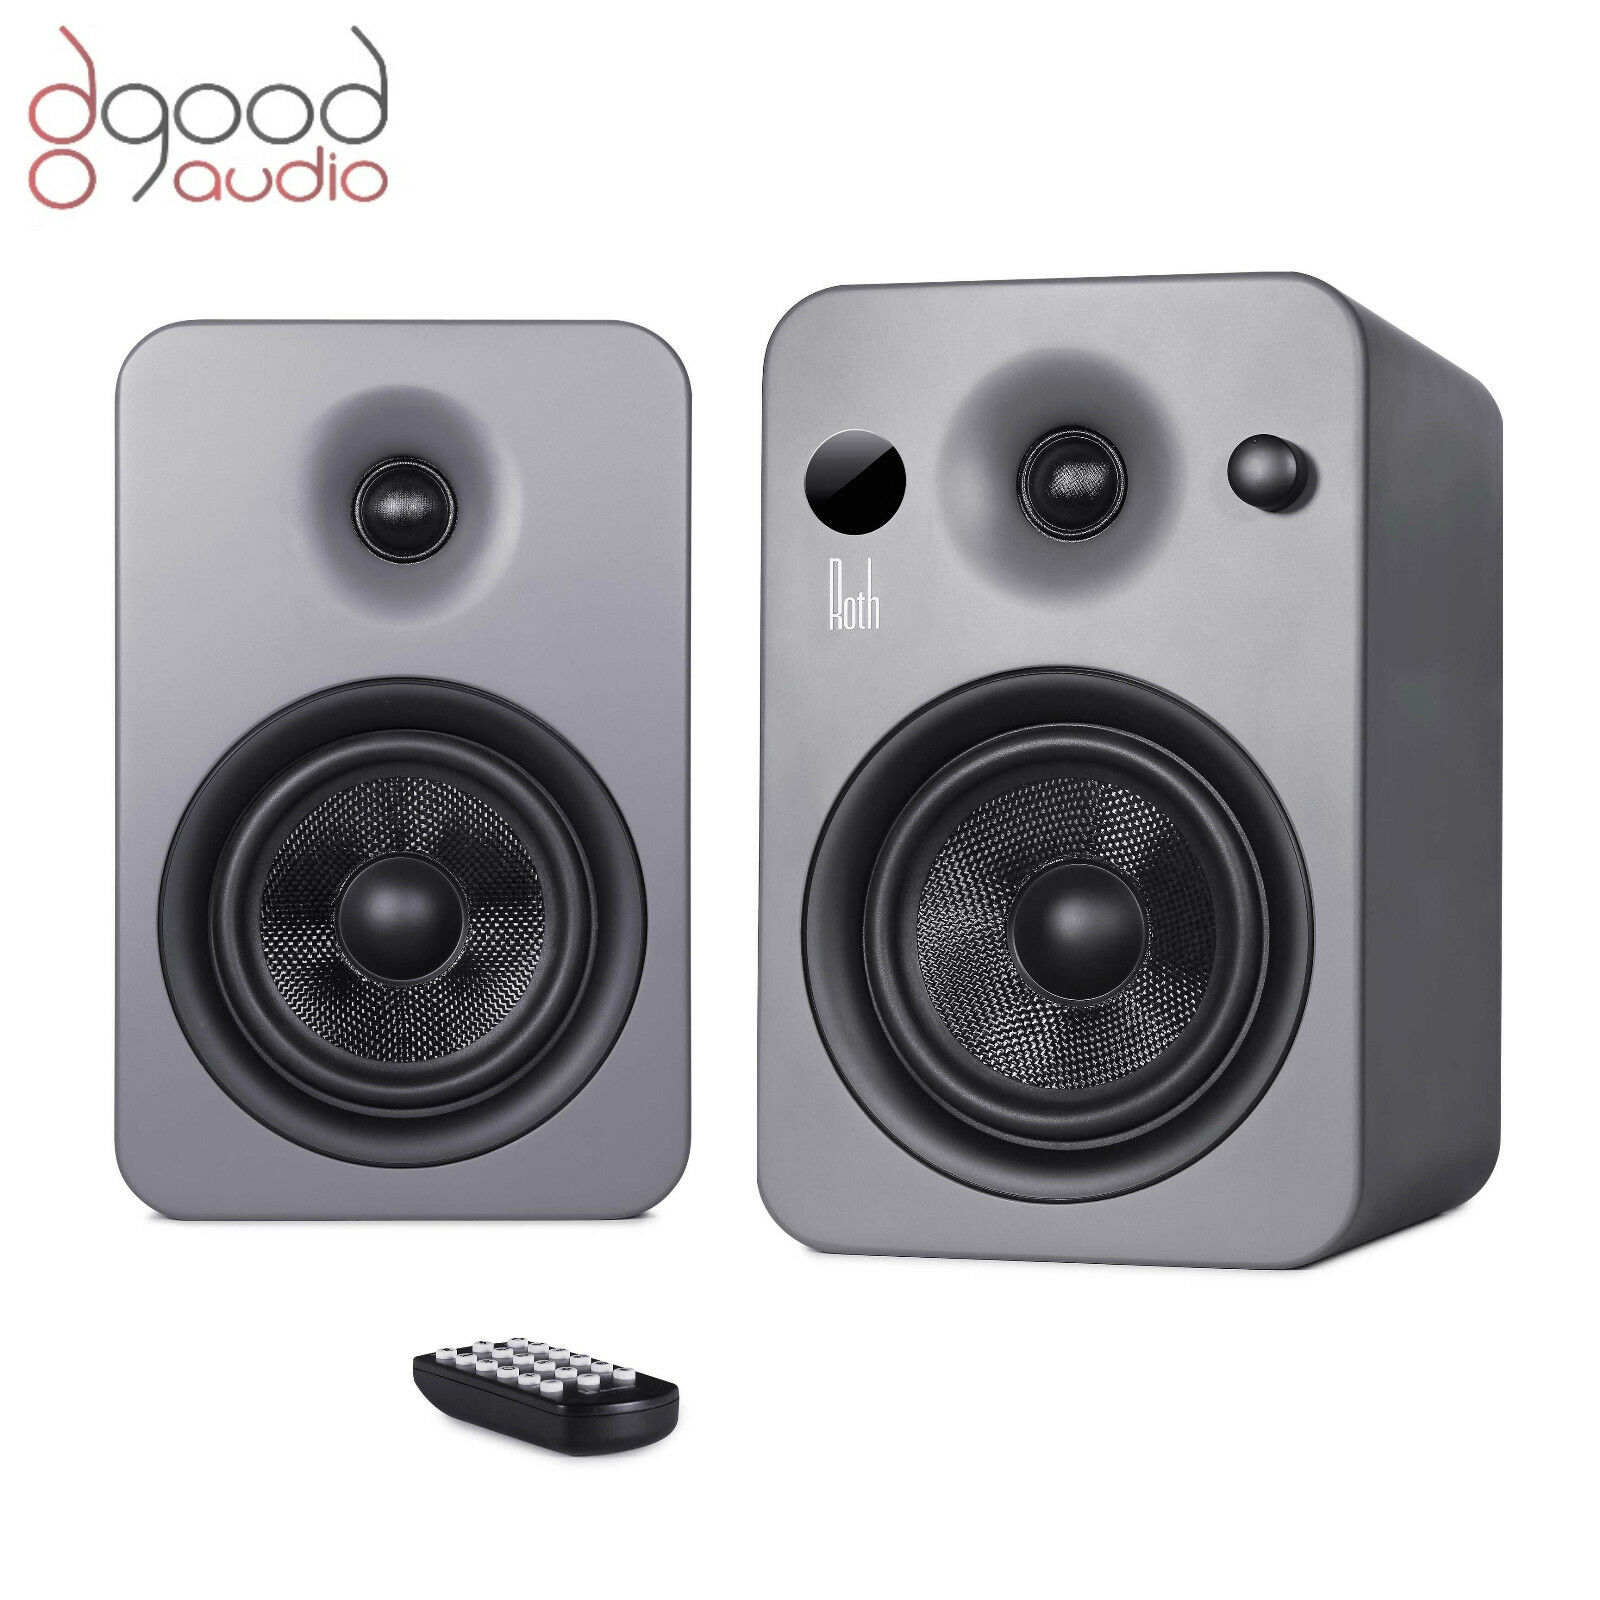 roth audio powa 5 mkii apt x bluetooth active stereo monitor speakers grey ebay. Black Bedroom Furniture Sets. Home Design Ideas